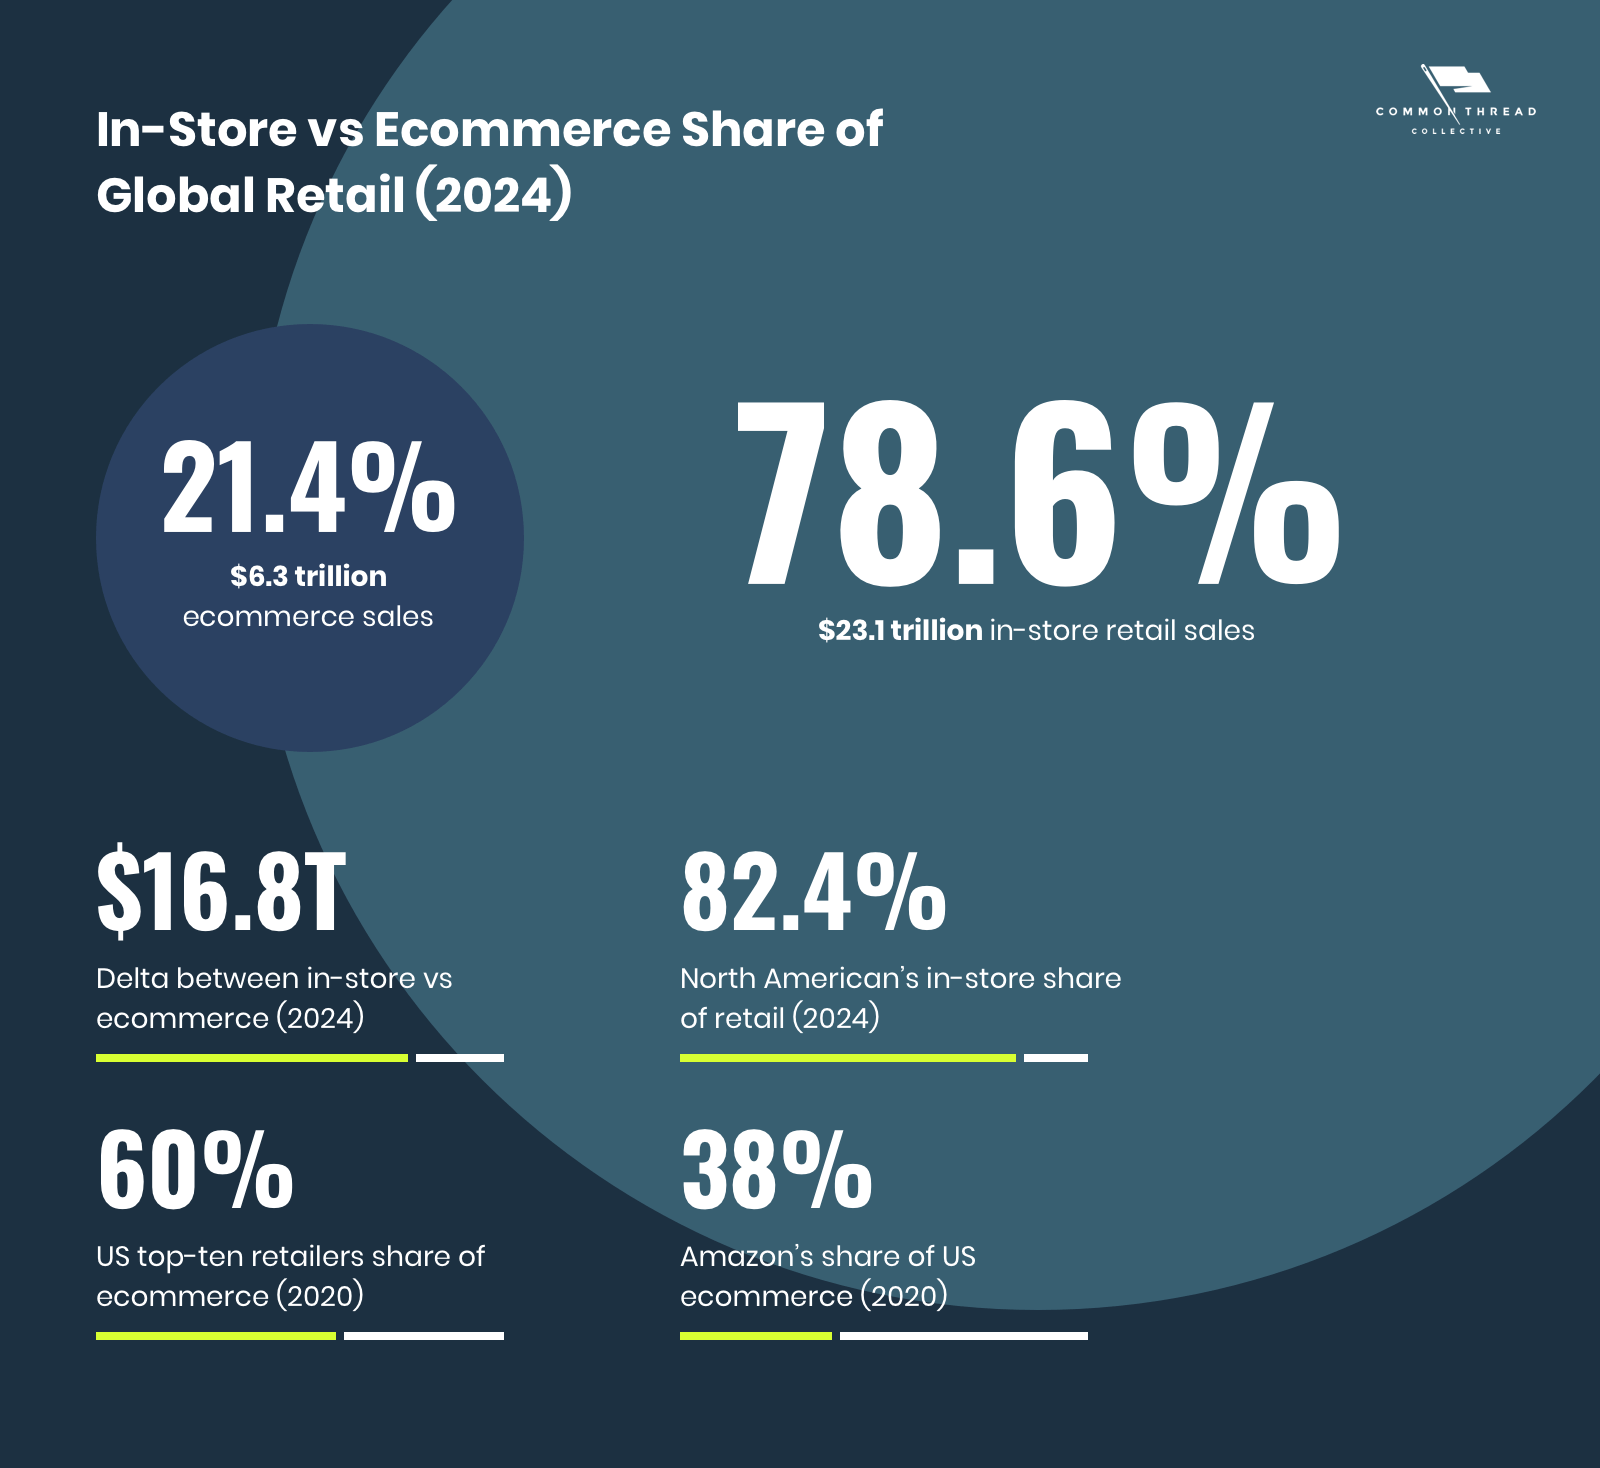 In-Store vs Ecommerce Share of Global Retail (2024)